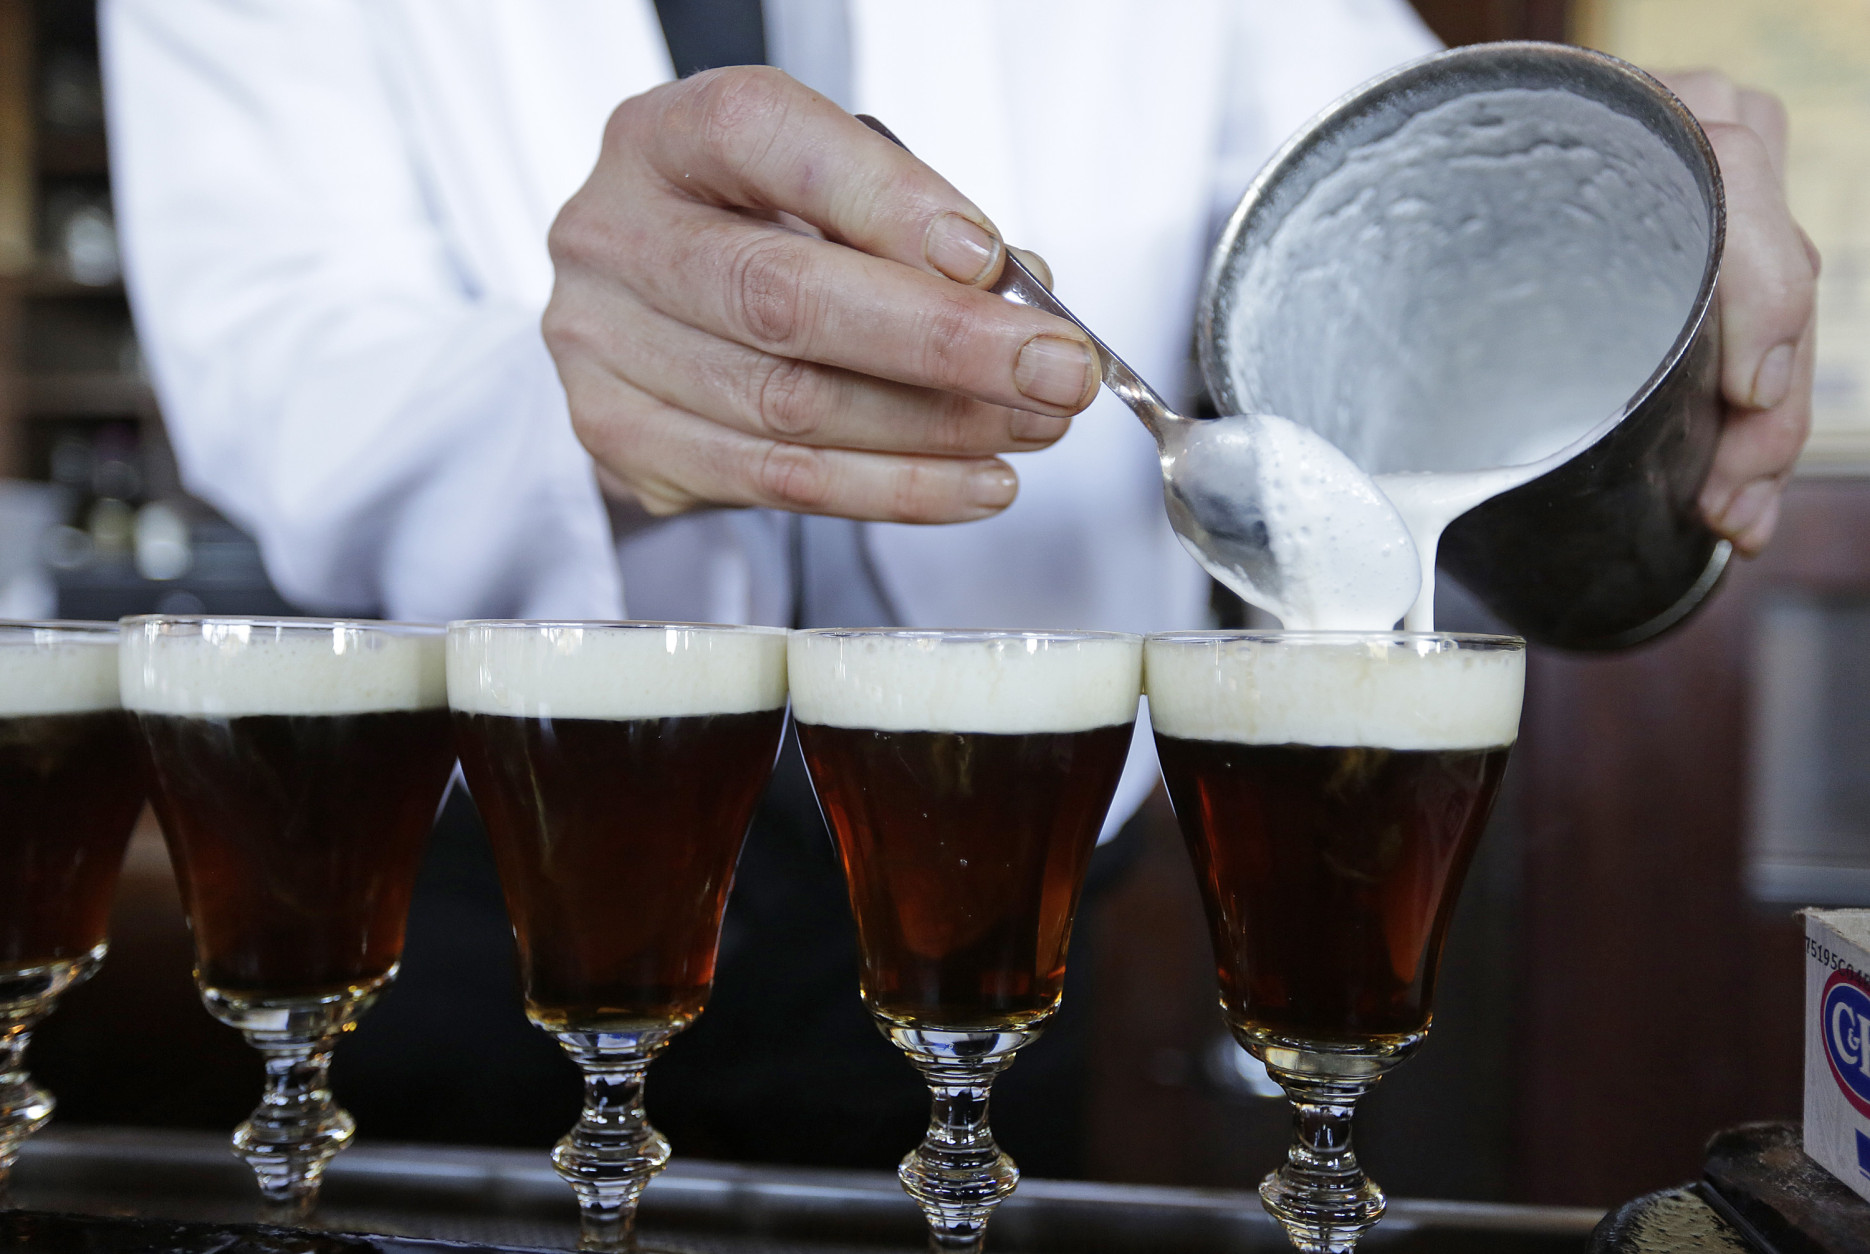 In this photo taken Tuesday, Dec. 15, 2015, bartender Paul Nolan makes Irish Coffee drinks at the Buena Vista Cafe in San Francisco. The drink has been made at the popular bar since 1952 and up to 2,000 are served a day. (AP Photo/Eric Risberg)